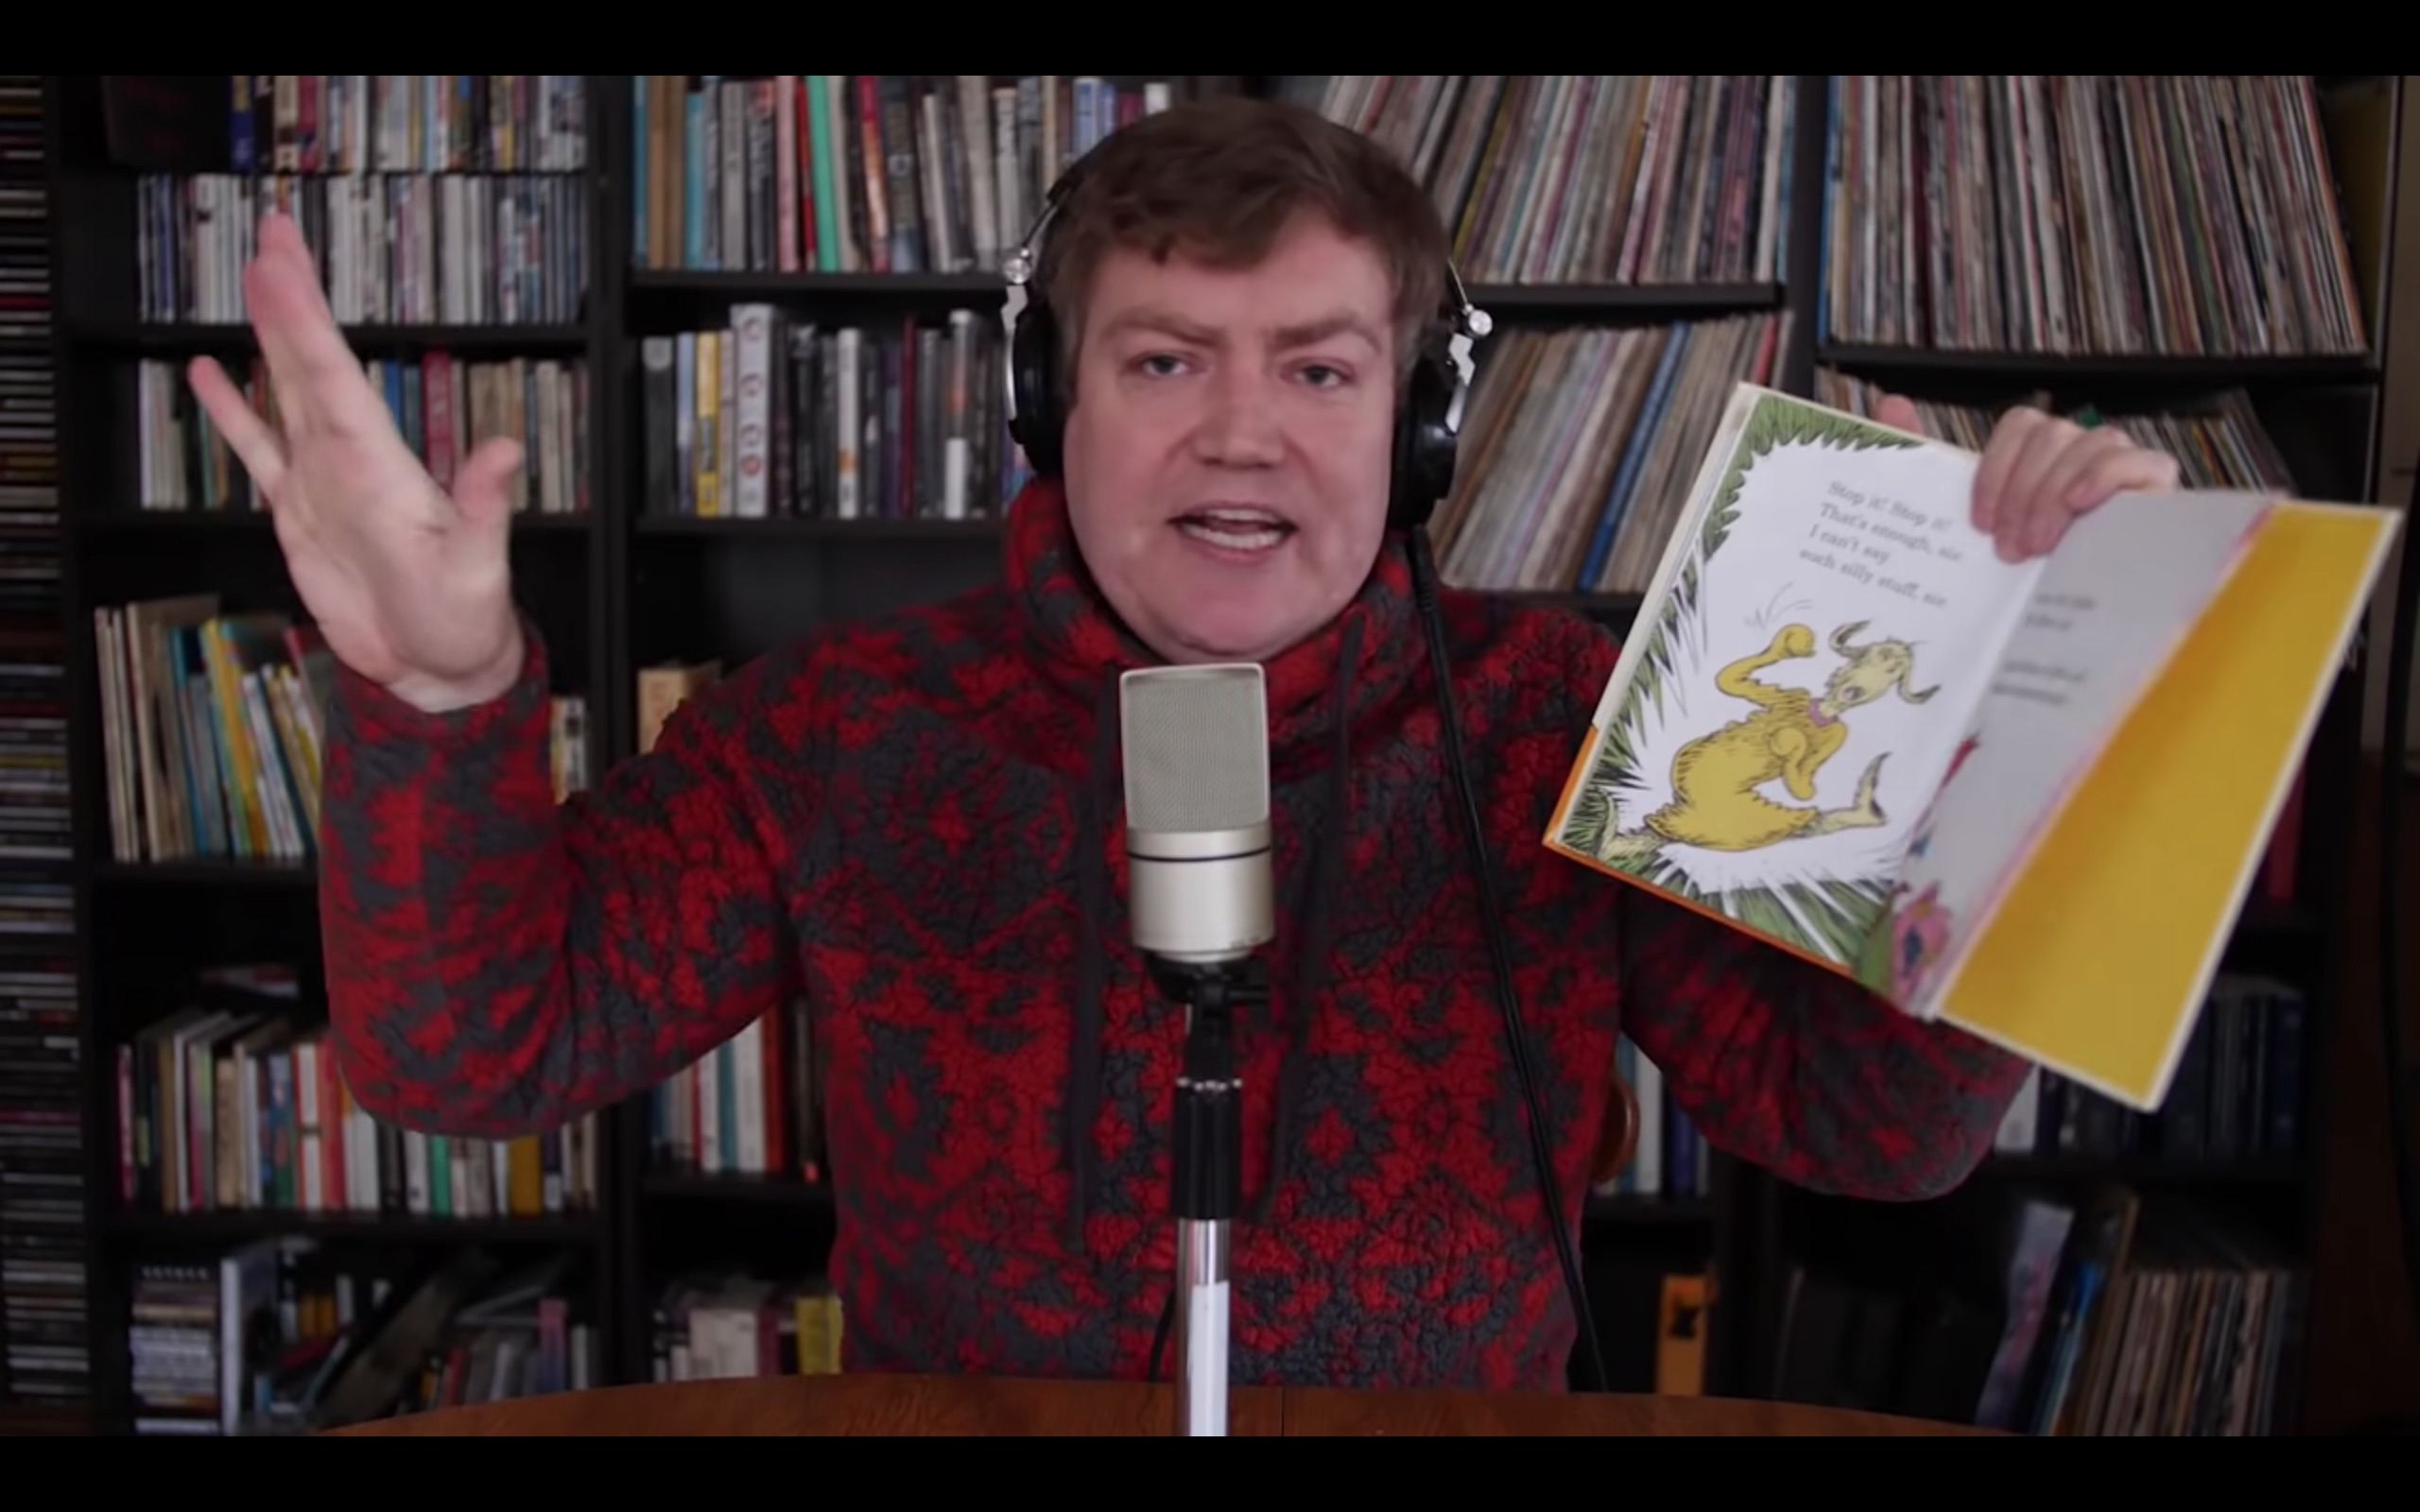 Wes Capp rapping Dr. Seuss